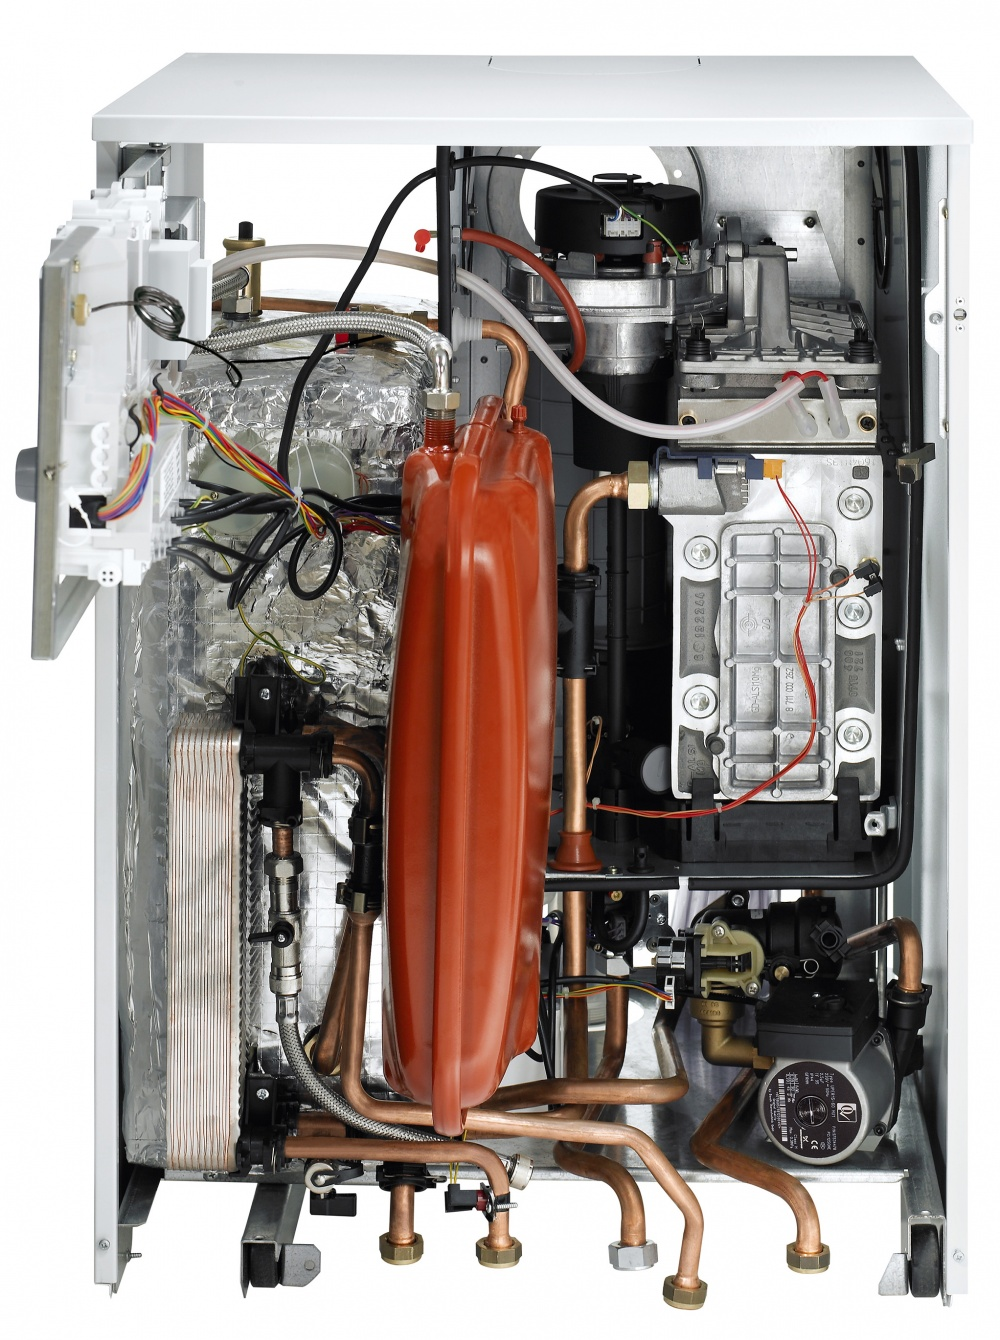 With Central Heating Wiring Diagram On Oil Boiler Wiring Diagram